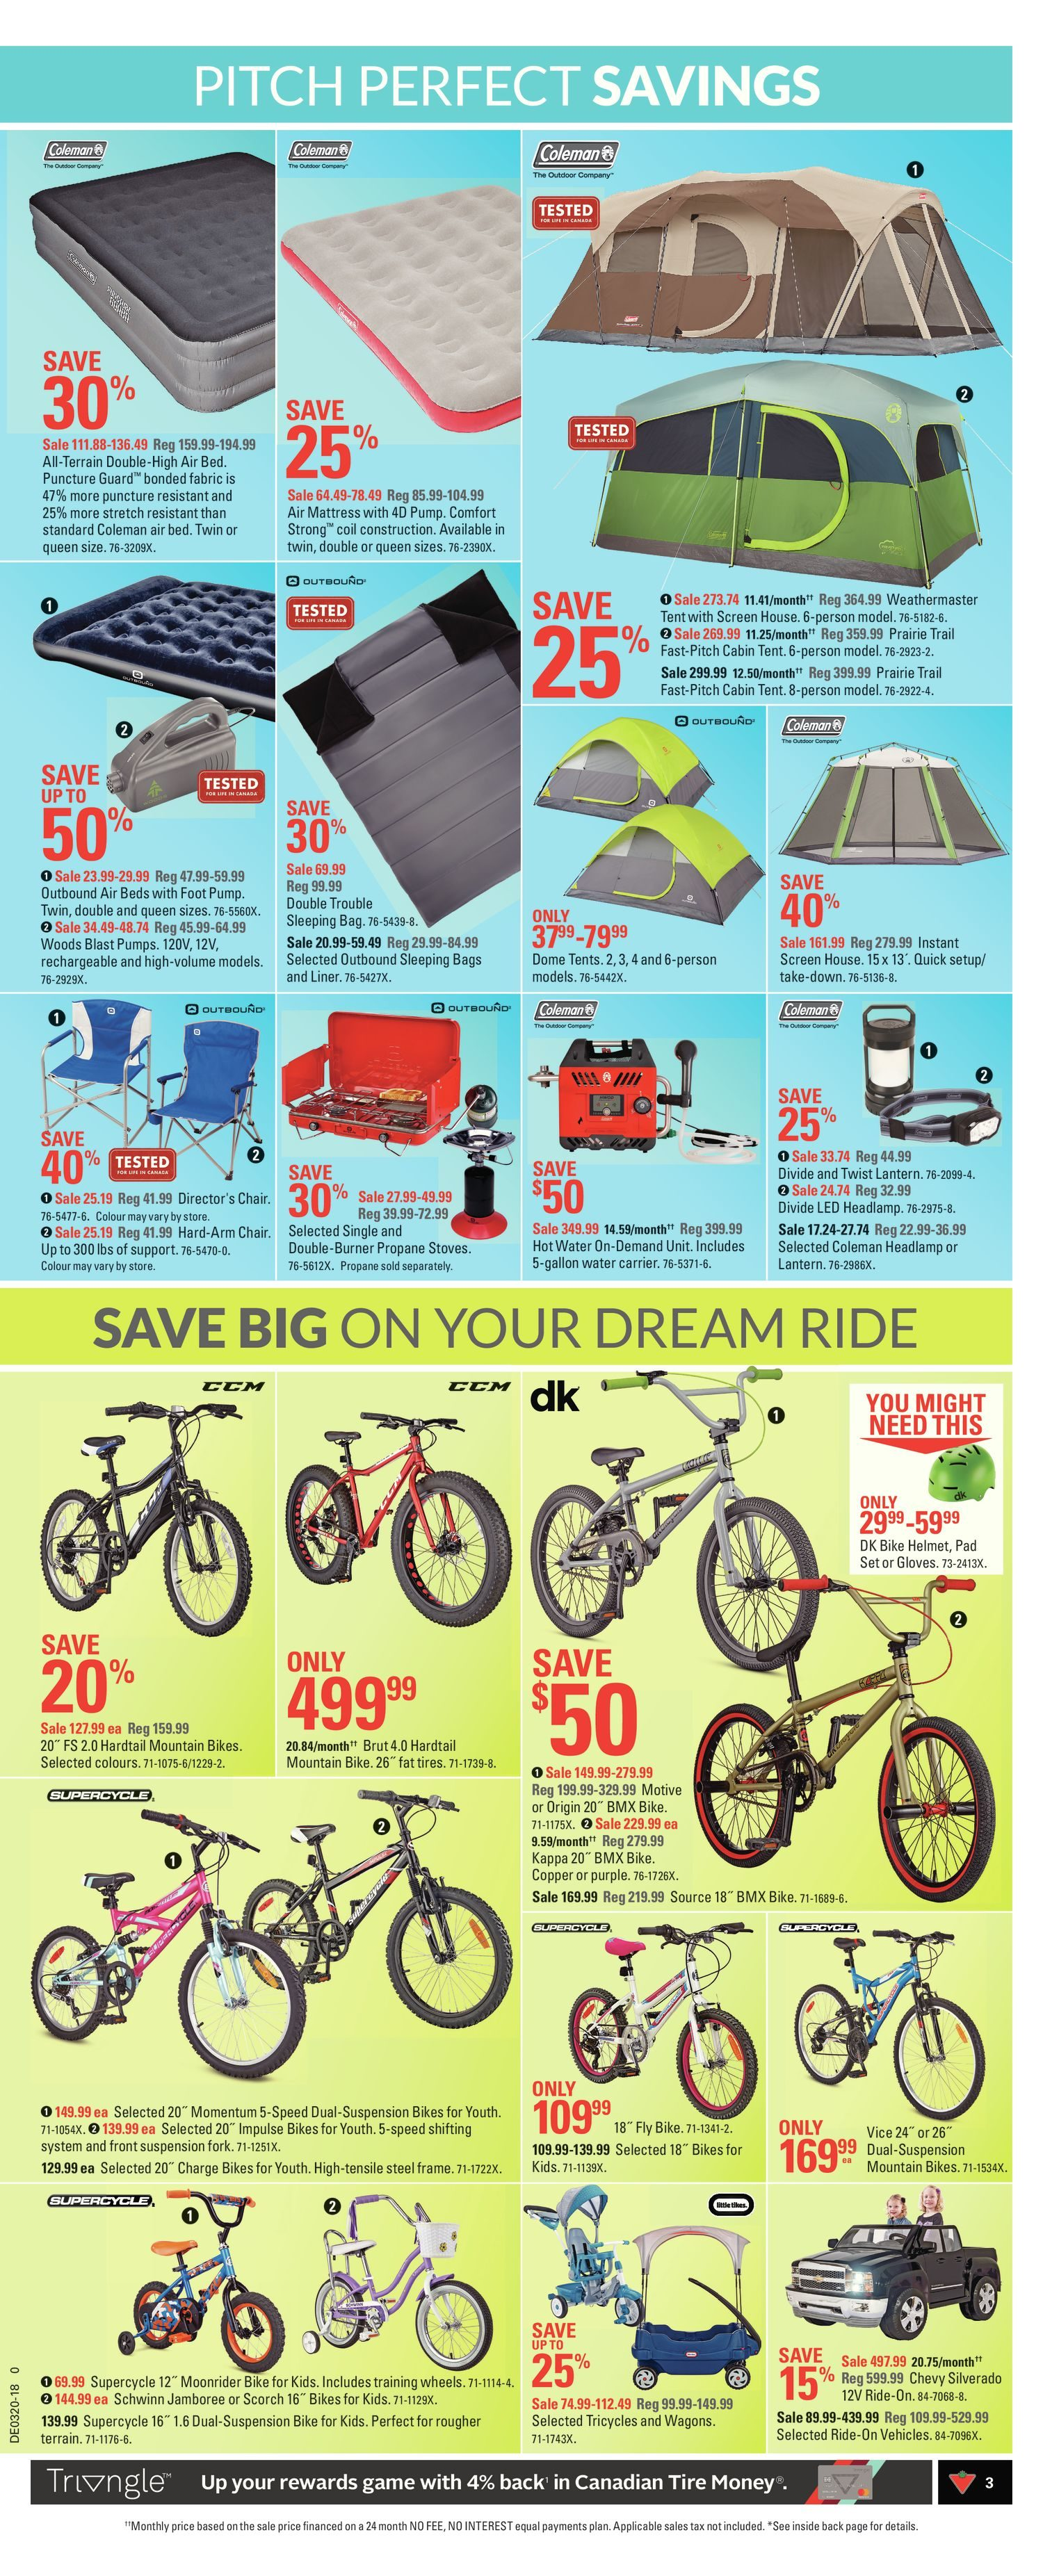 Canadian Tire Weekly Flyer Spring Madness 7 Day Sale Got This Jeep 5 Rotation Diagram See More 784 May 11 17